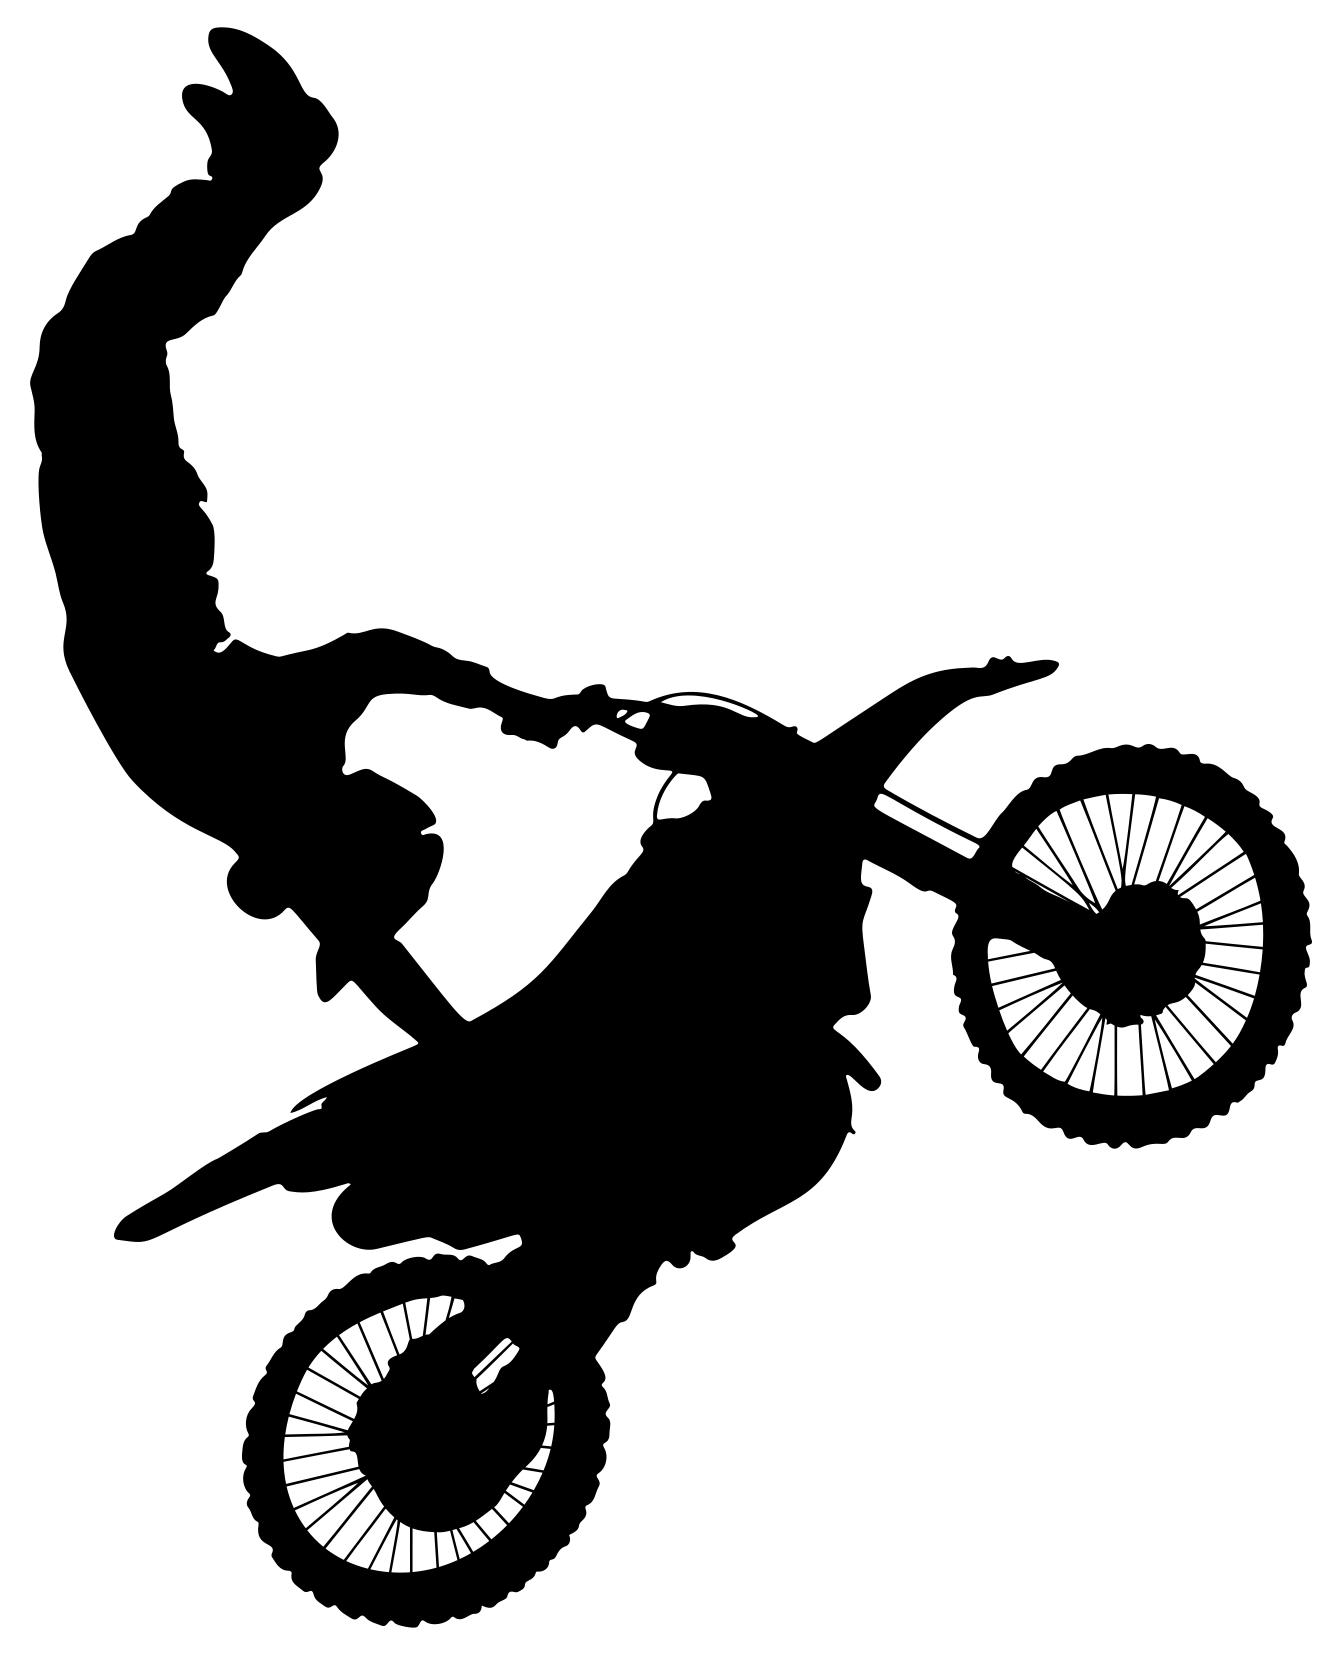 dirt bike silhouette dirt bike wheelie file size dirt bike silhouette vector bike silhouette dirt